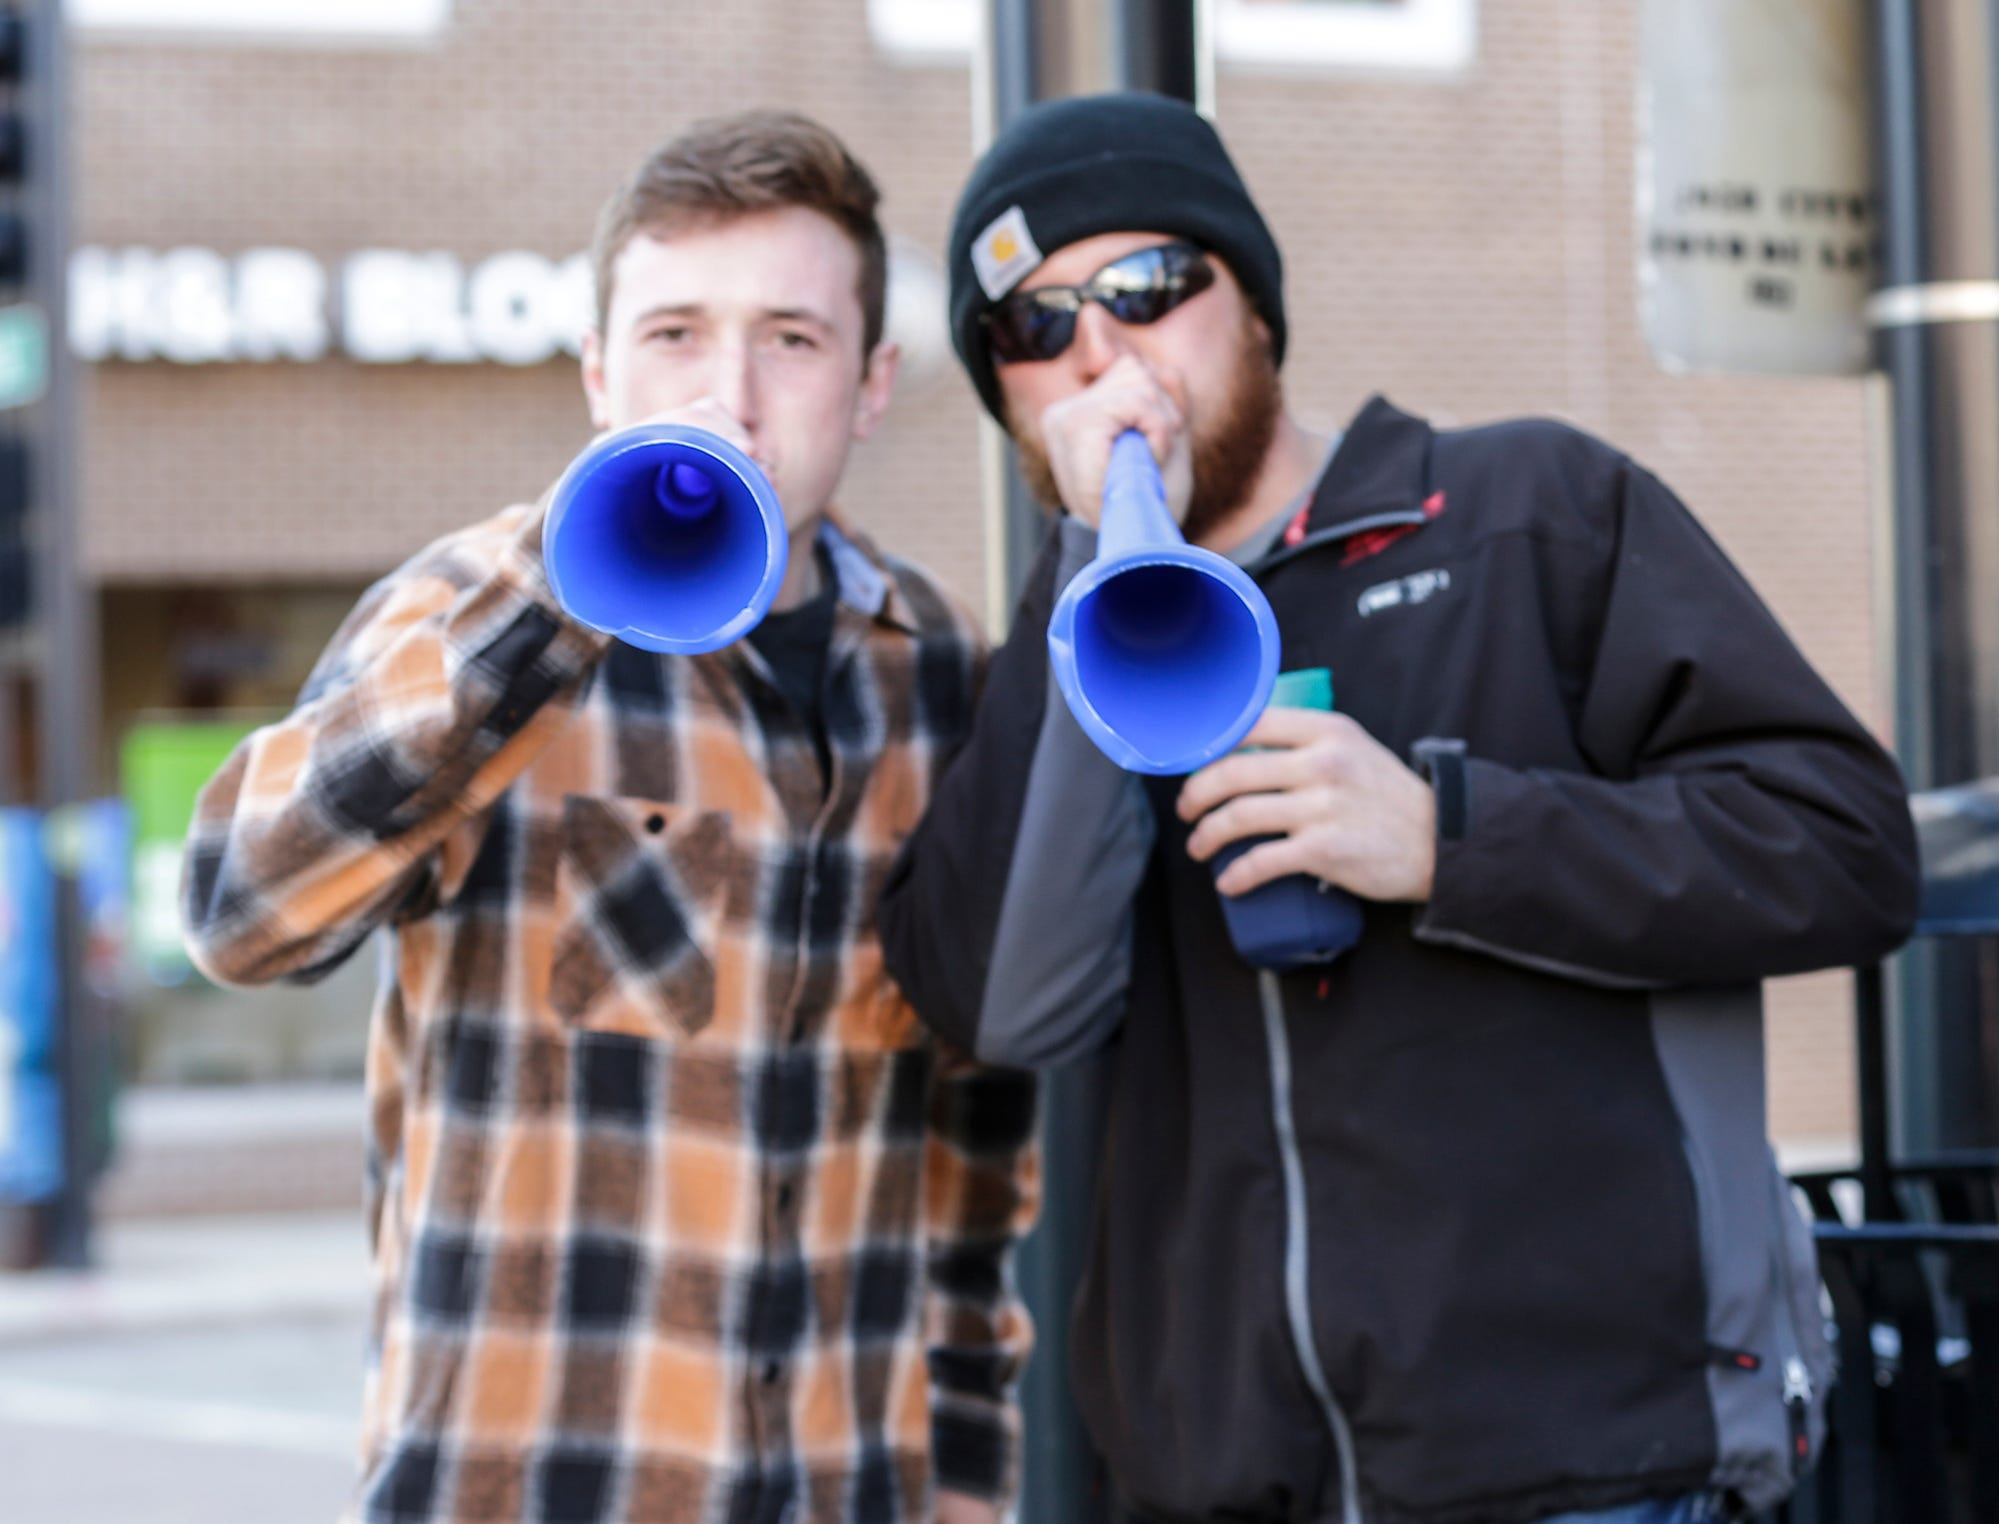 Chase Koenigs and Mitchel Oberbo blow horns as they watch the City of Fond du Lac St. Patrick's Day Parade Saturday, March 16, 2019 on Main Street in downtown Fond du Lac. Hundreds of people lined the street to watch over 50 parade participants. Doug Raflik/USA TODAY NETWORK-Wisconsin